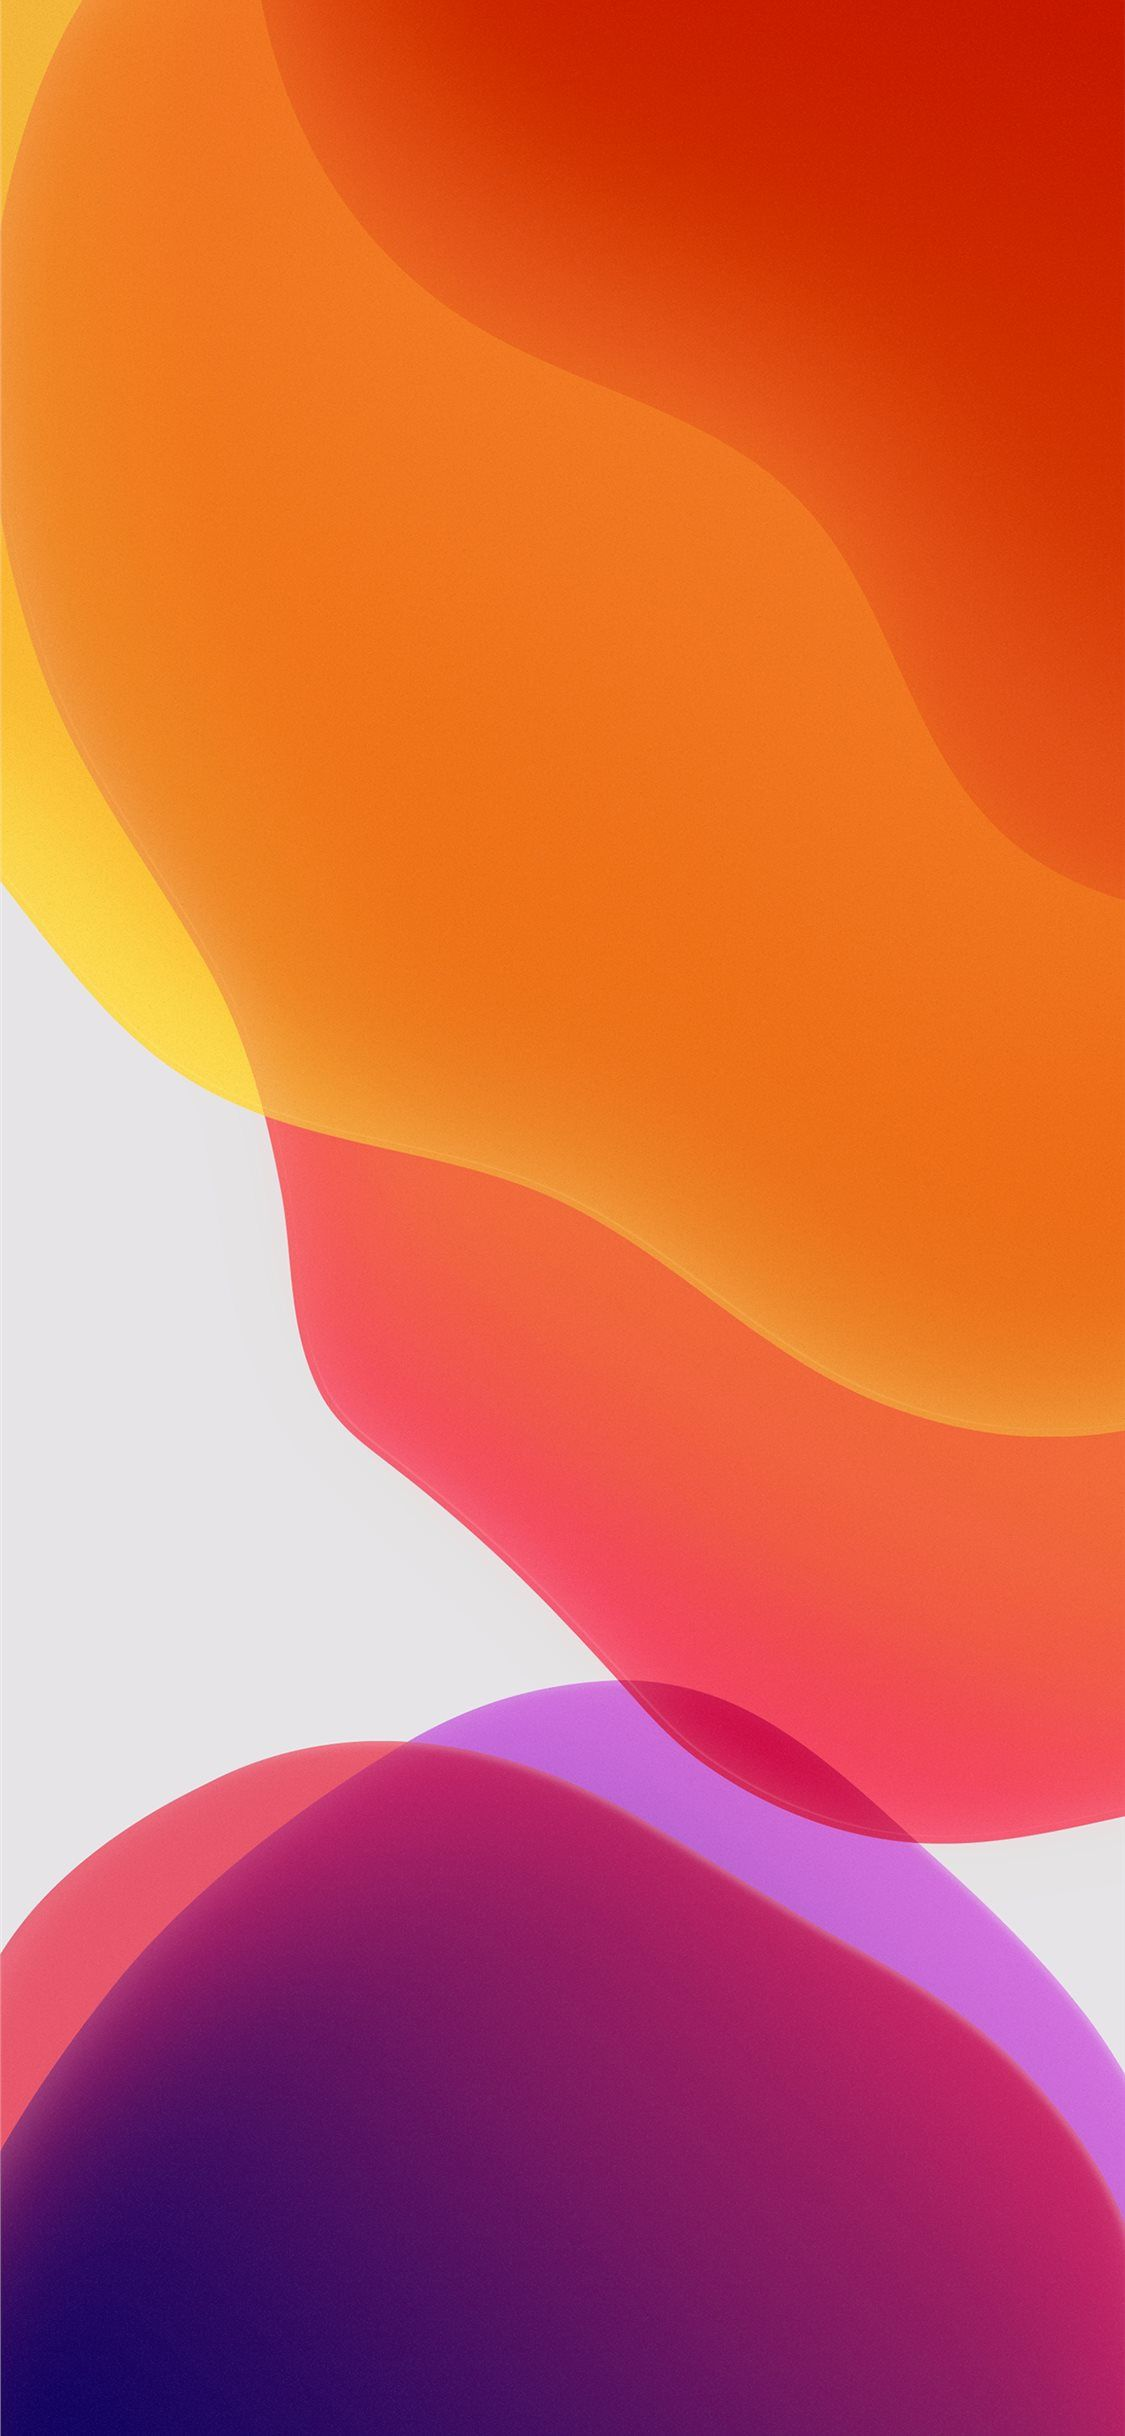 Free download the ios 13 wallpaper ,beaty your phone